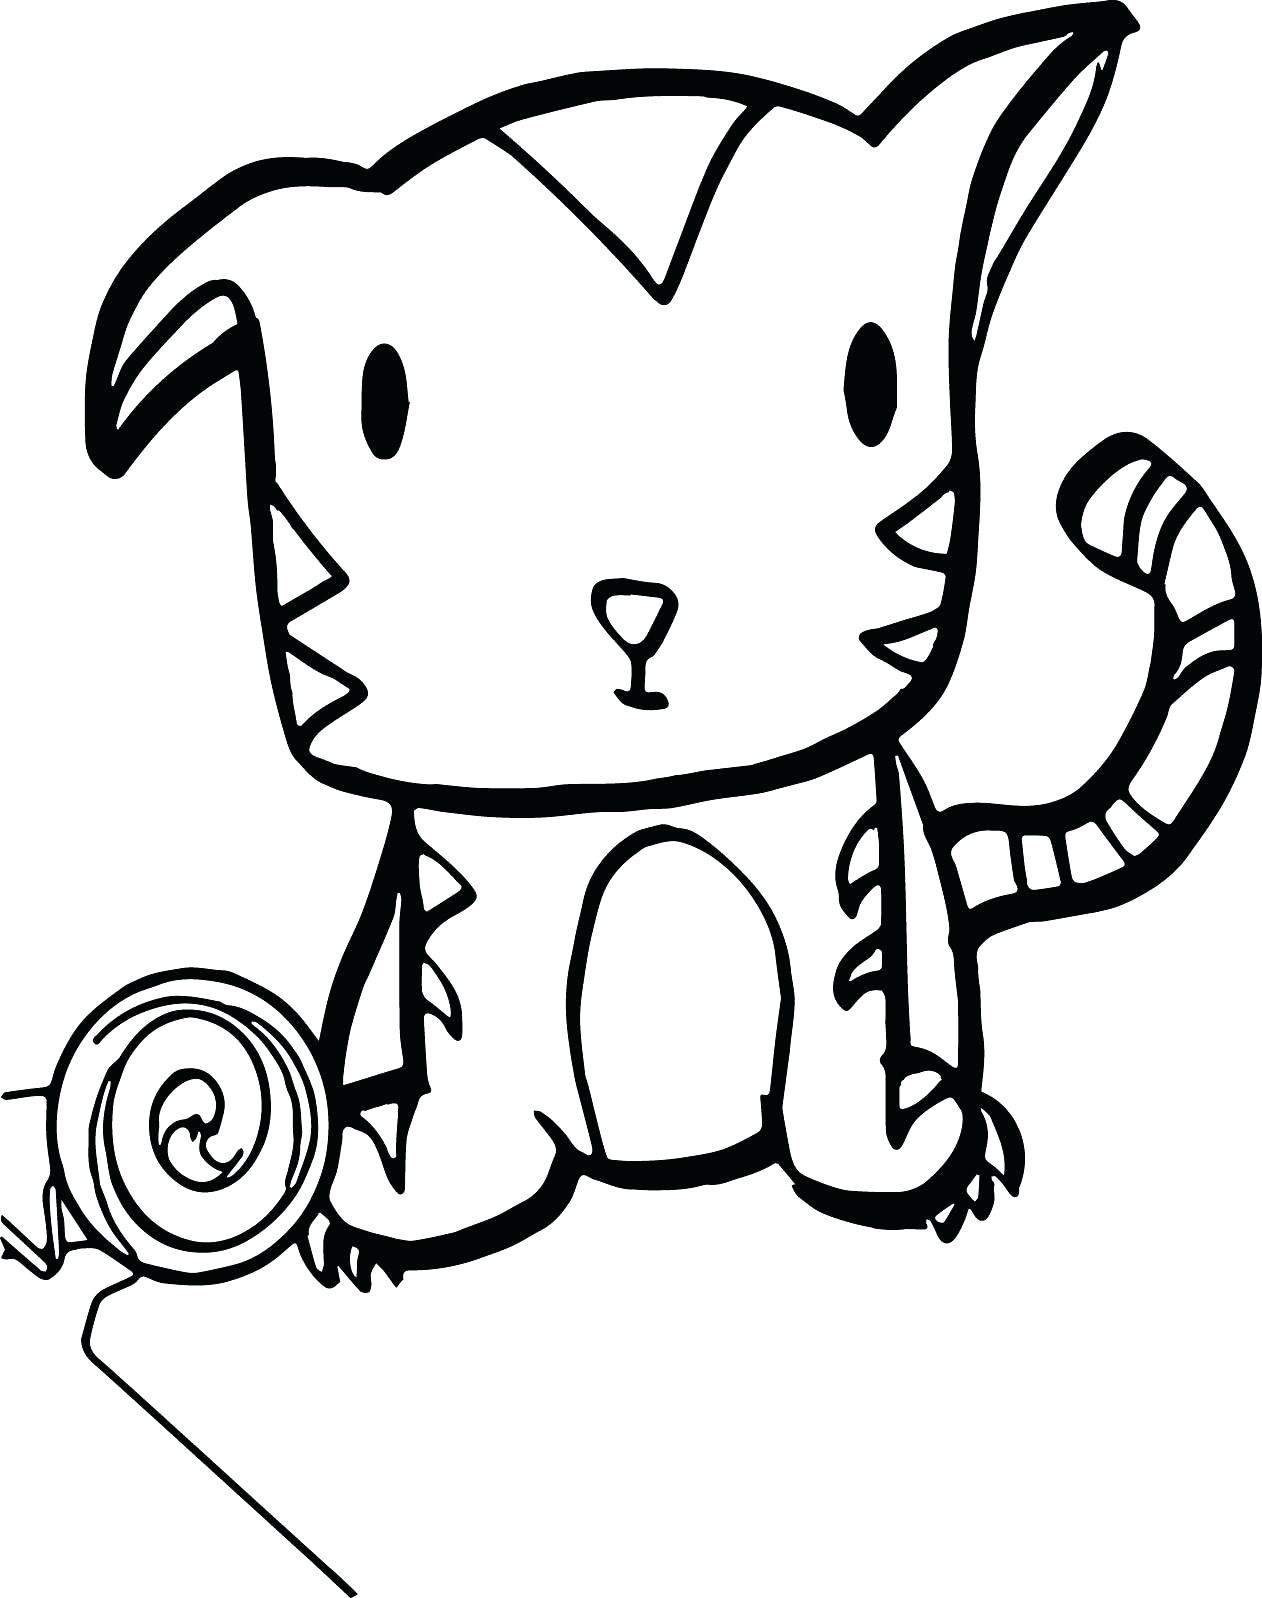 Cute Baby Tiger Coloring Pages  Baby Tiger Drawing at GetDrawings